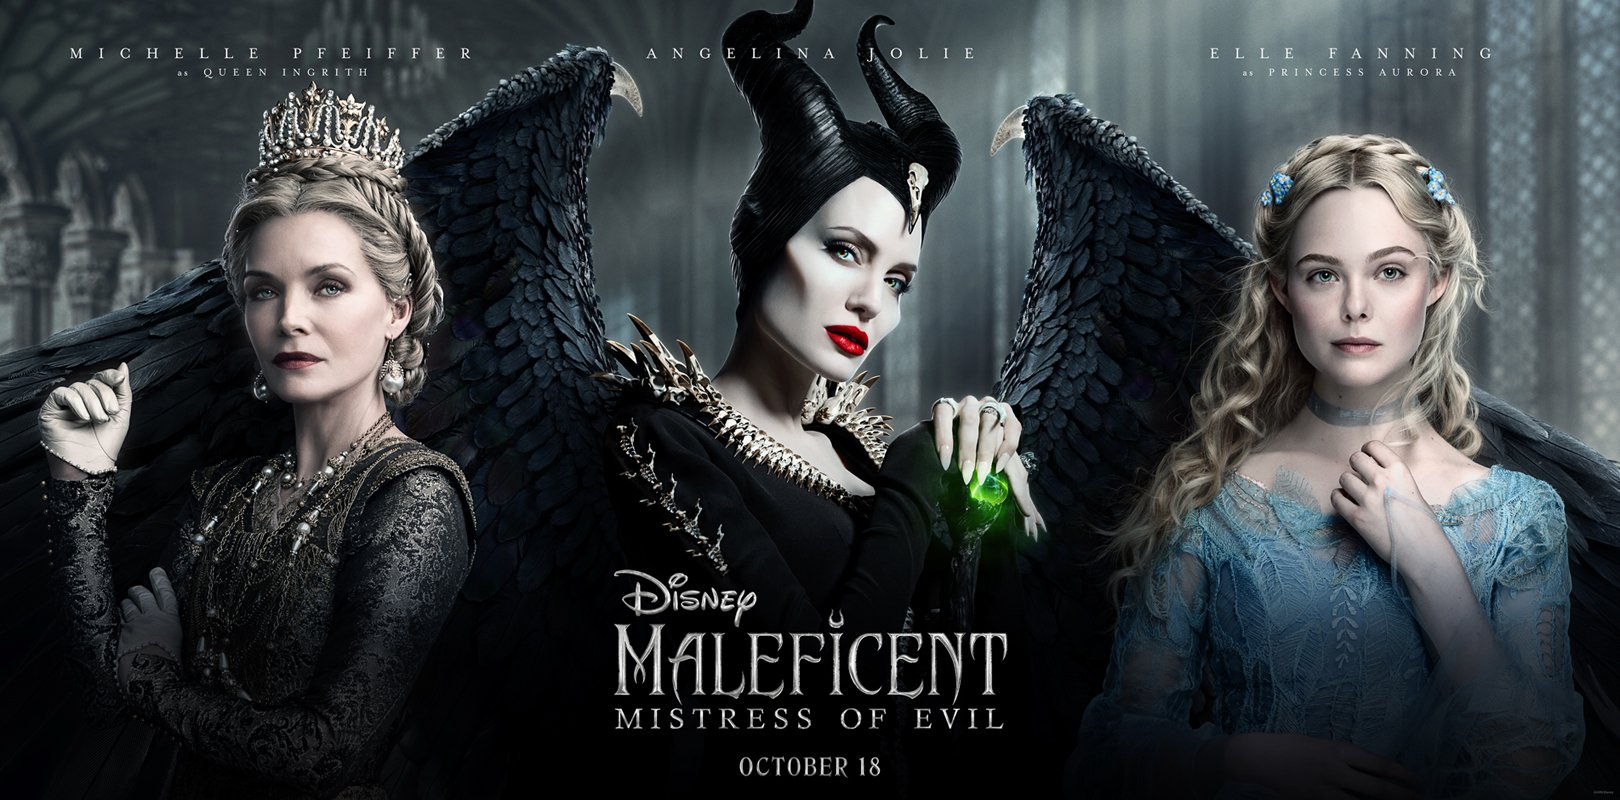 'Maleficent: Mistress of Evil' - landscape artwork